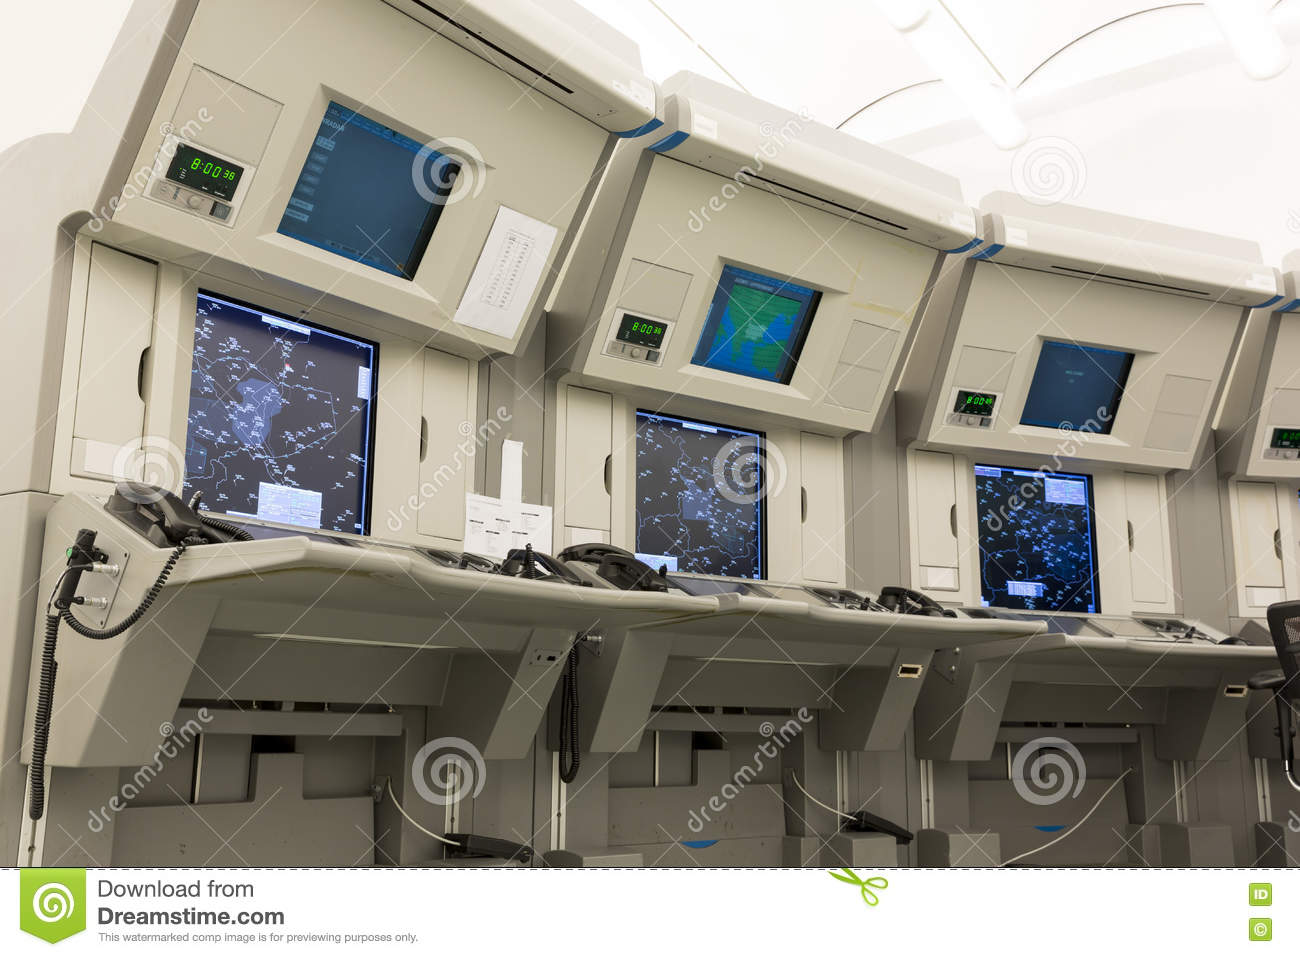 Air Traffic Control Station Stock Image - Image of airline